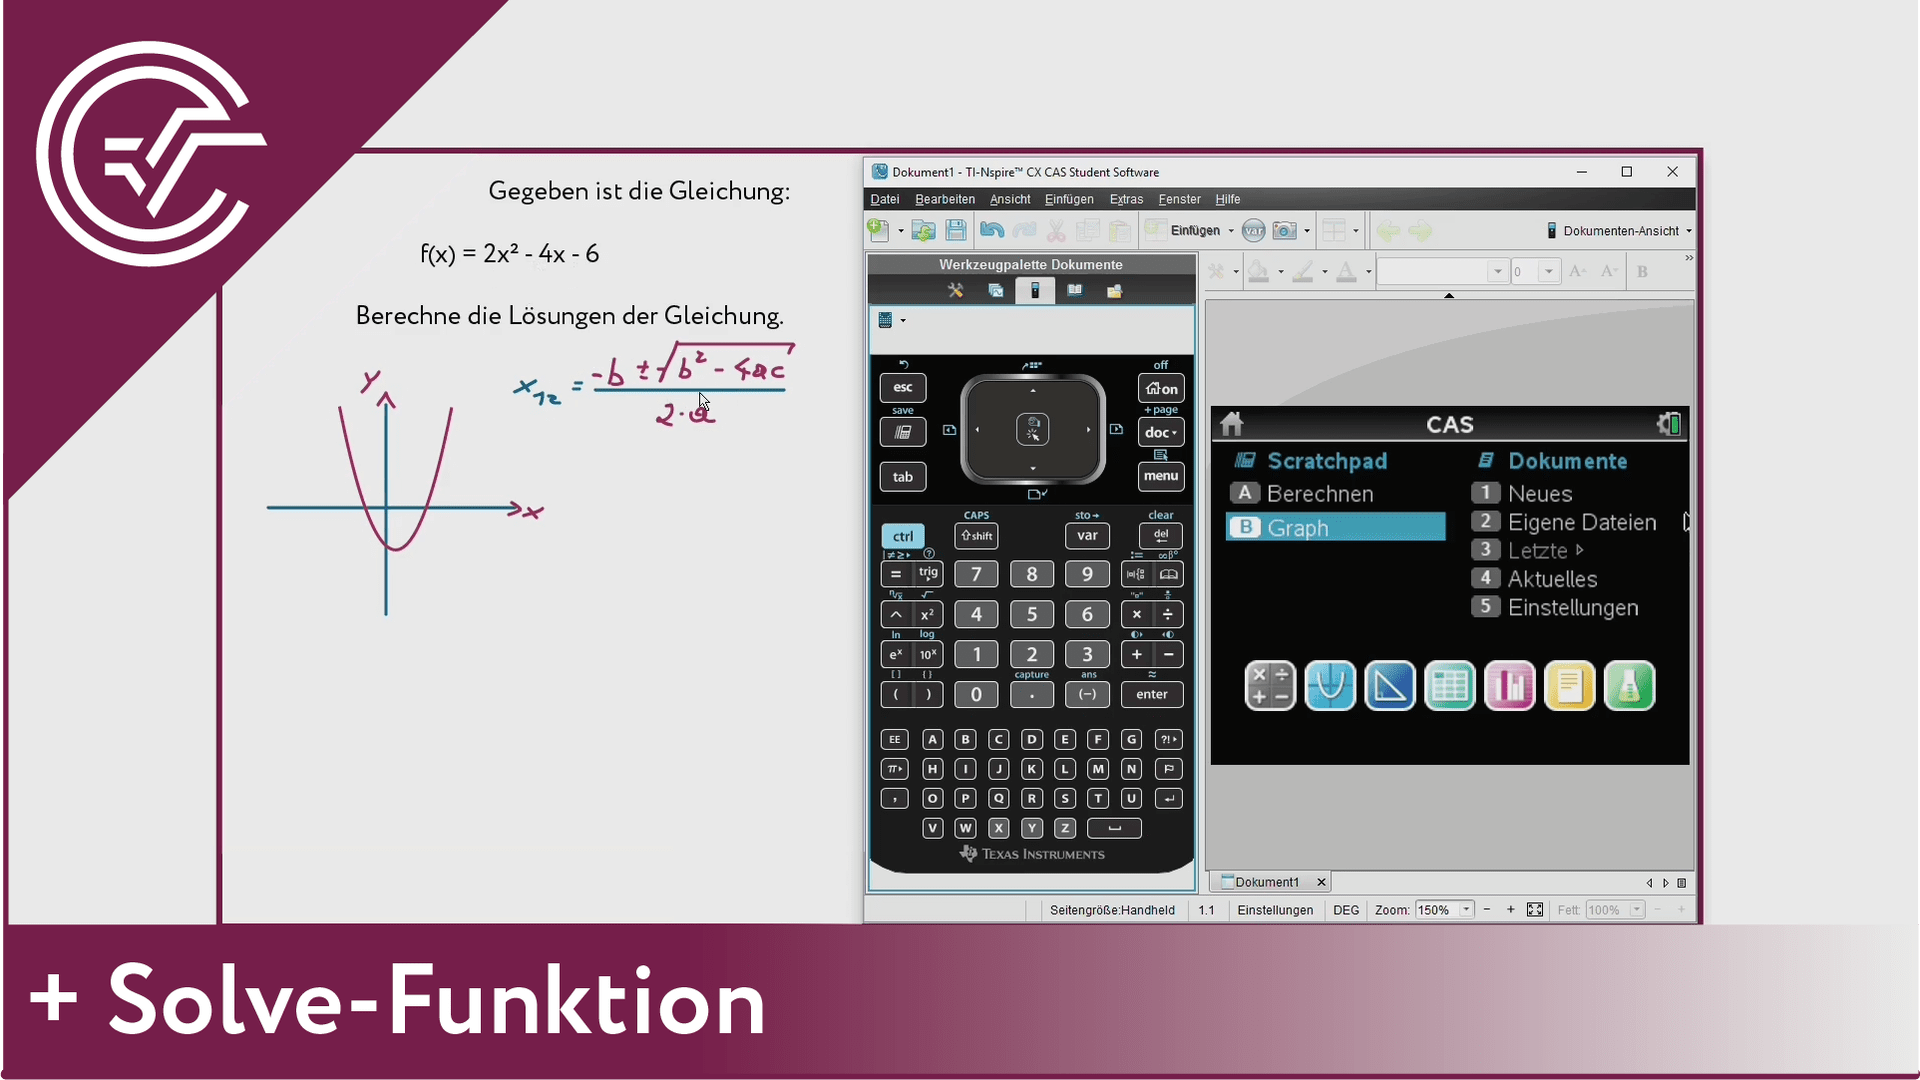 1. Solve Funktion [TI-Nspire]